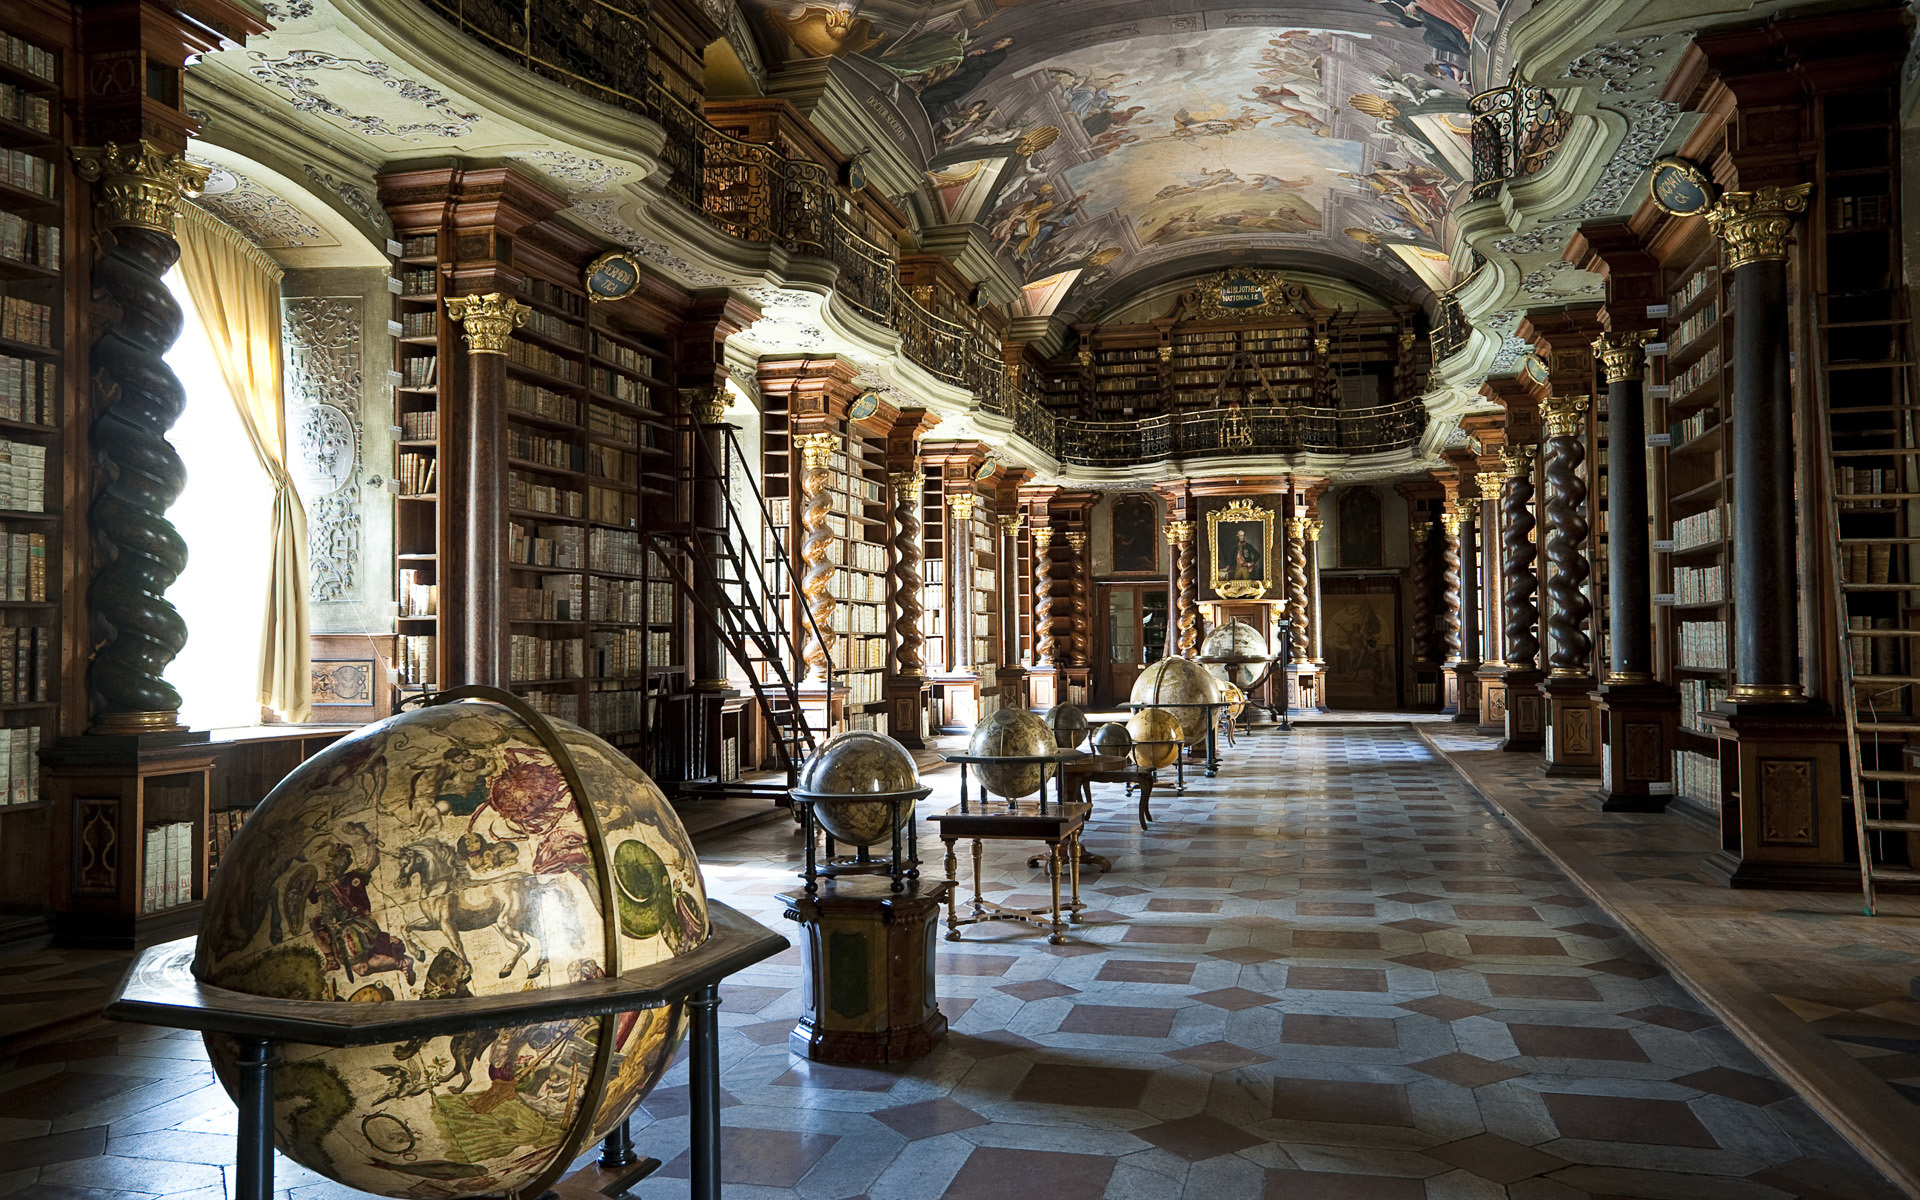 library books columns ceiling painting sculpture globes room rooms 1920x1200